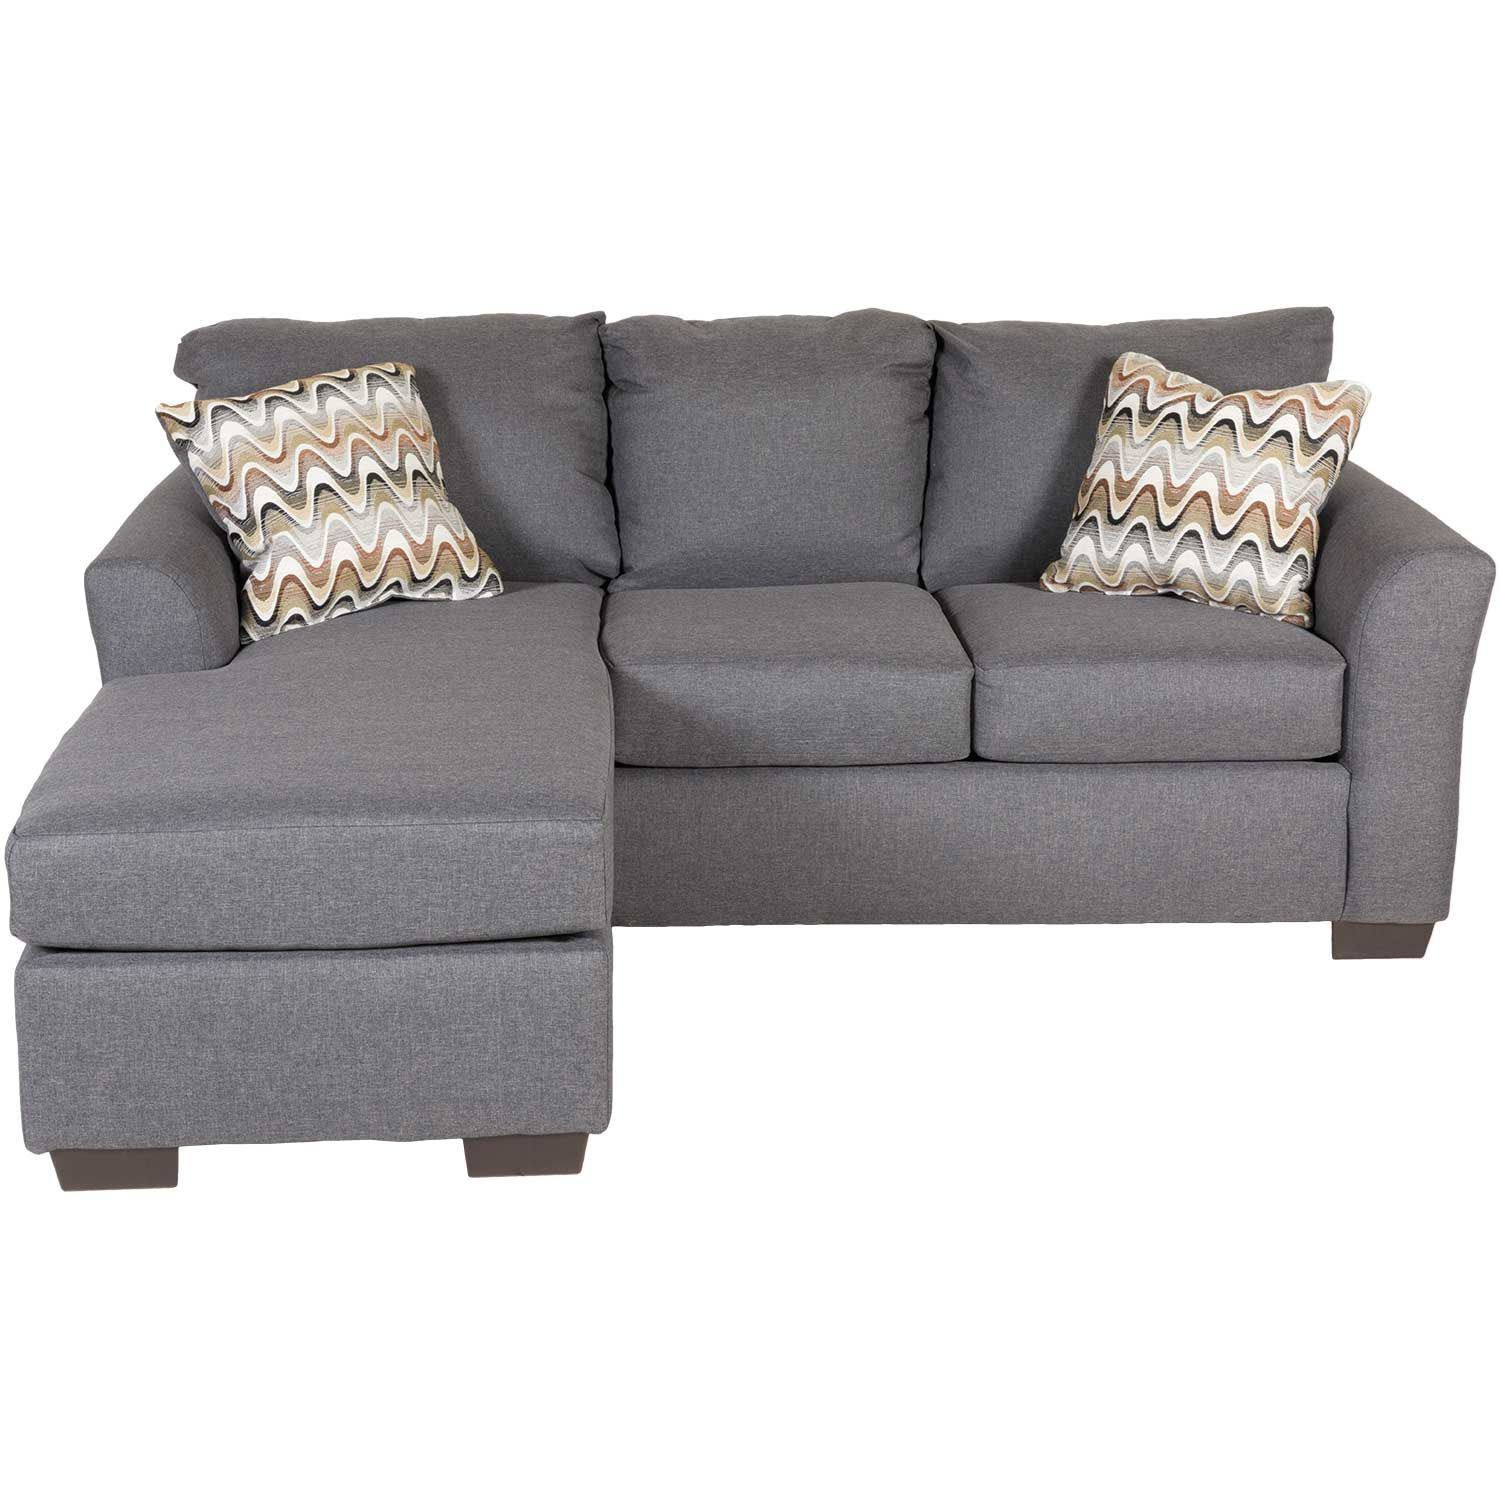 Best ideas about Grey Sectional Sofa With Chaise . Save or Pin Ryleigh Grey Sofa with Chaise D1 3903S Now.